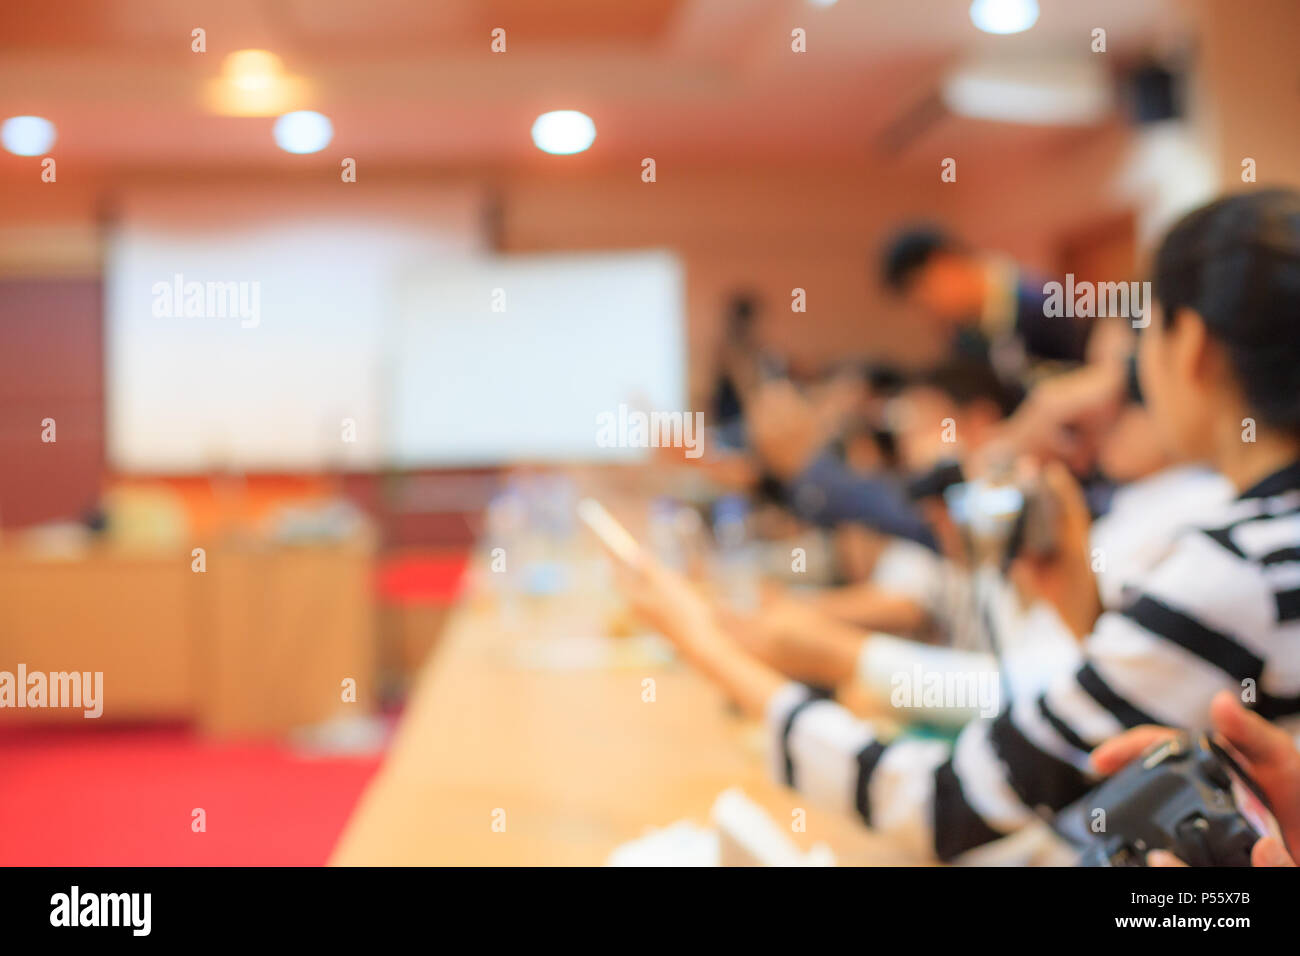 blurred conference, press media, meeting room, lecture classroom with long tables and audience background - Stock Image